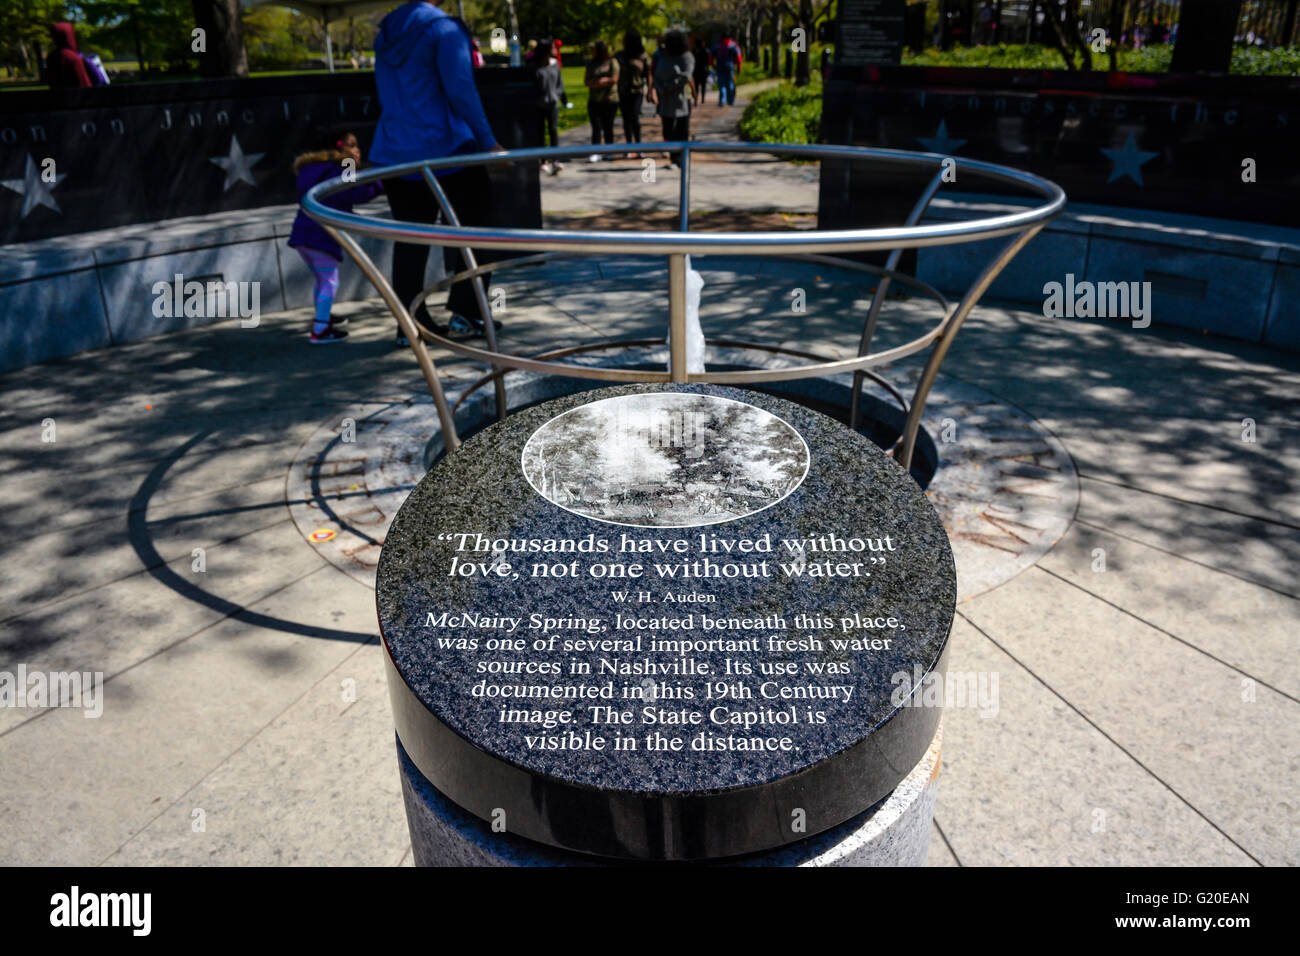 Revolution how to get hm01 cut pokemon revolution move relearner - Water Fountains Nashville Tn Stock Photo The Mcnairy Spring Memorial Fountain With W H Auden Quote